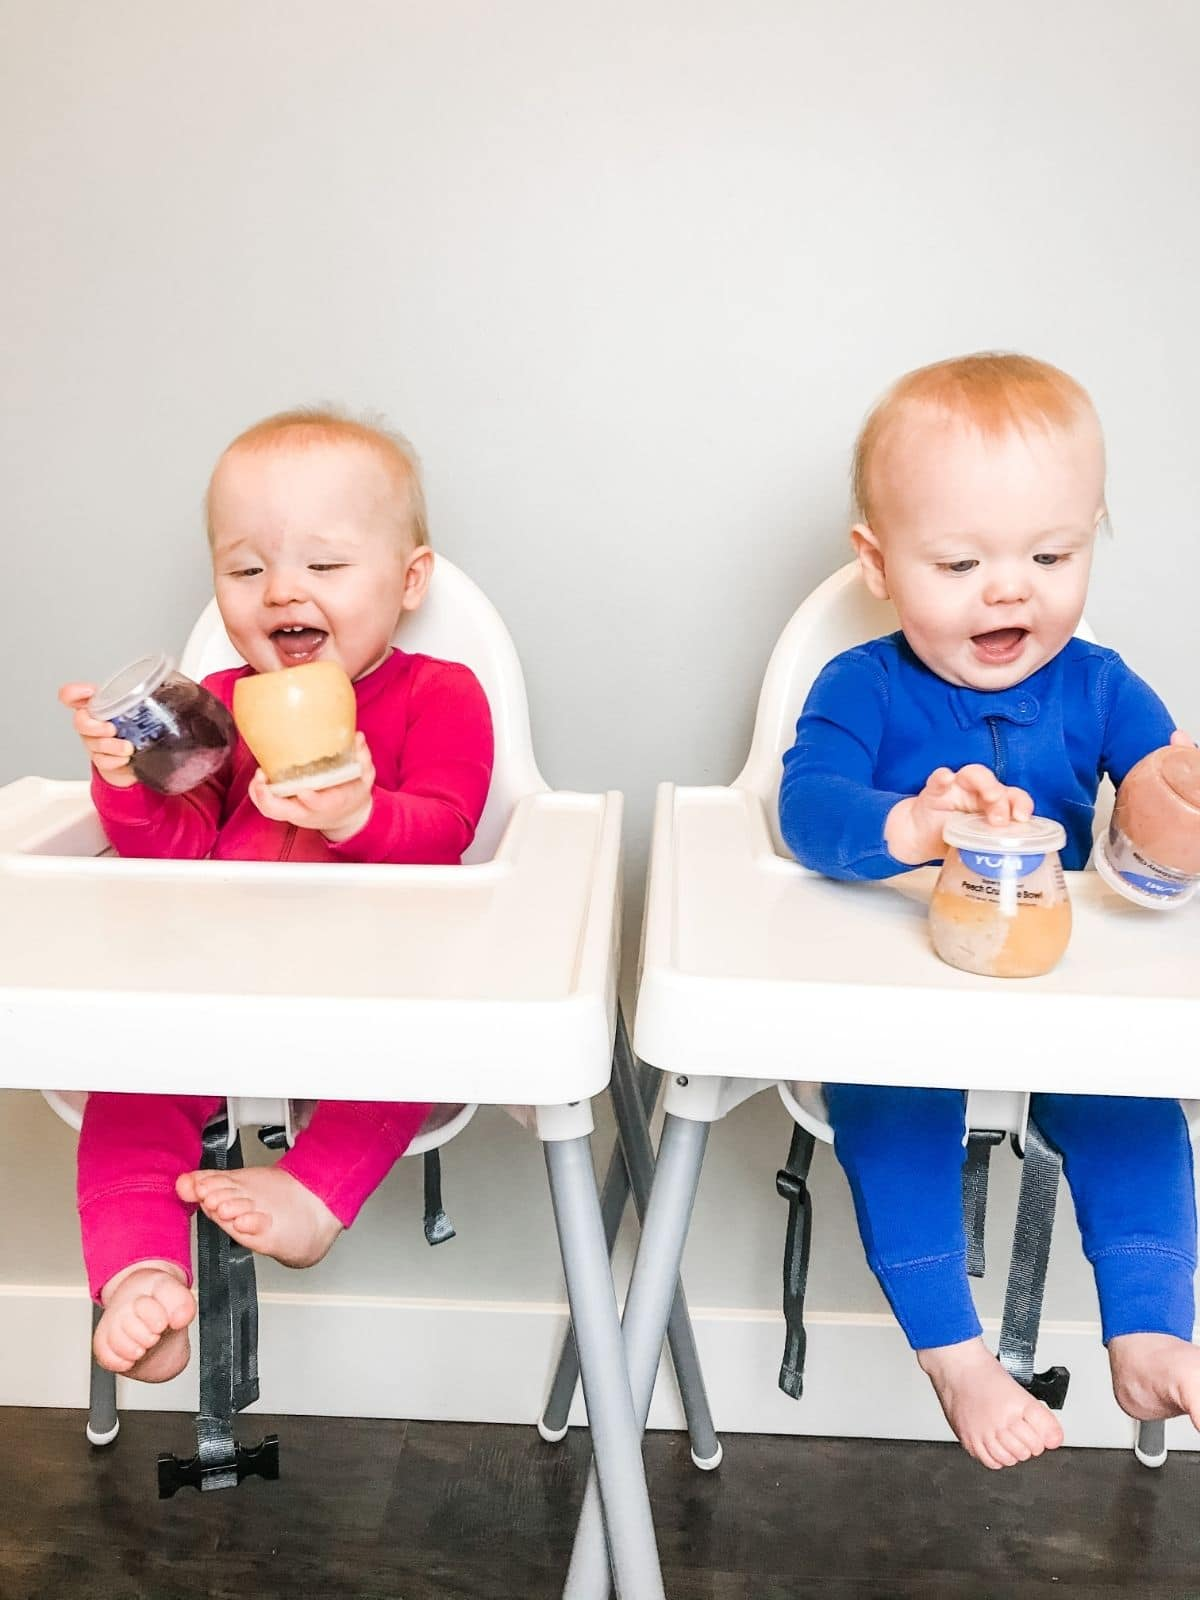 twin babies wearing pink and blue in high chairs playing with baby food jars